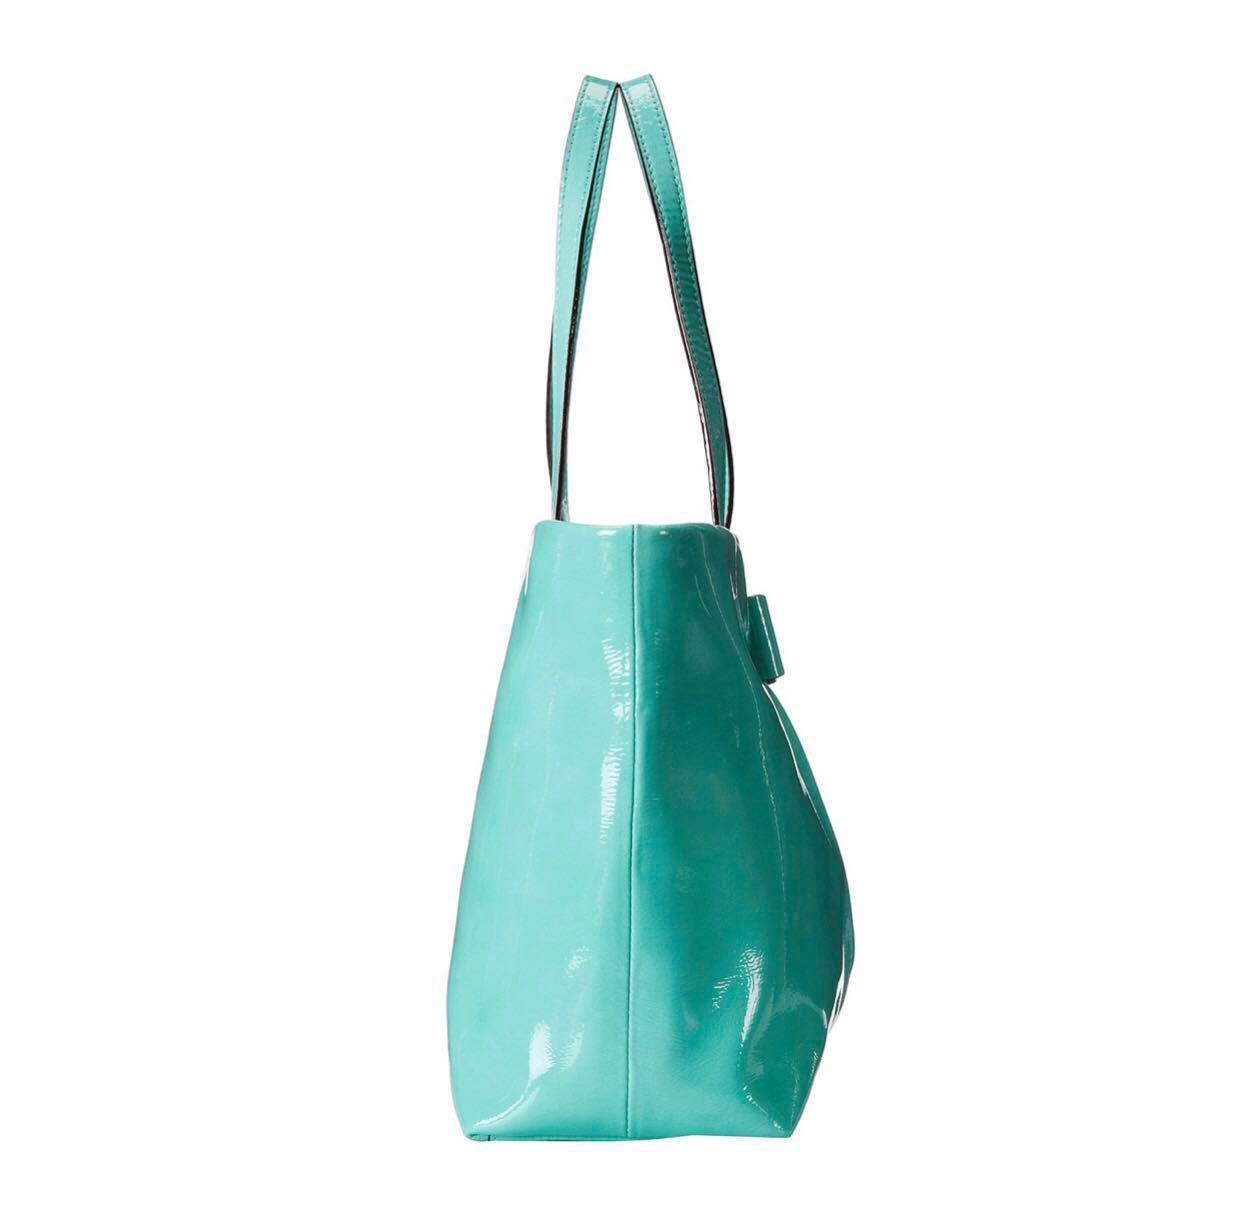 Kate Spade Veranda Place Patent Small Evie Shoulder Bag (Tote) with dust bag Color: Fresh Air (Tiffany Blue)